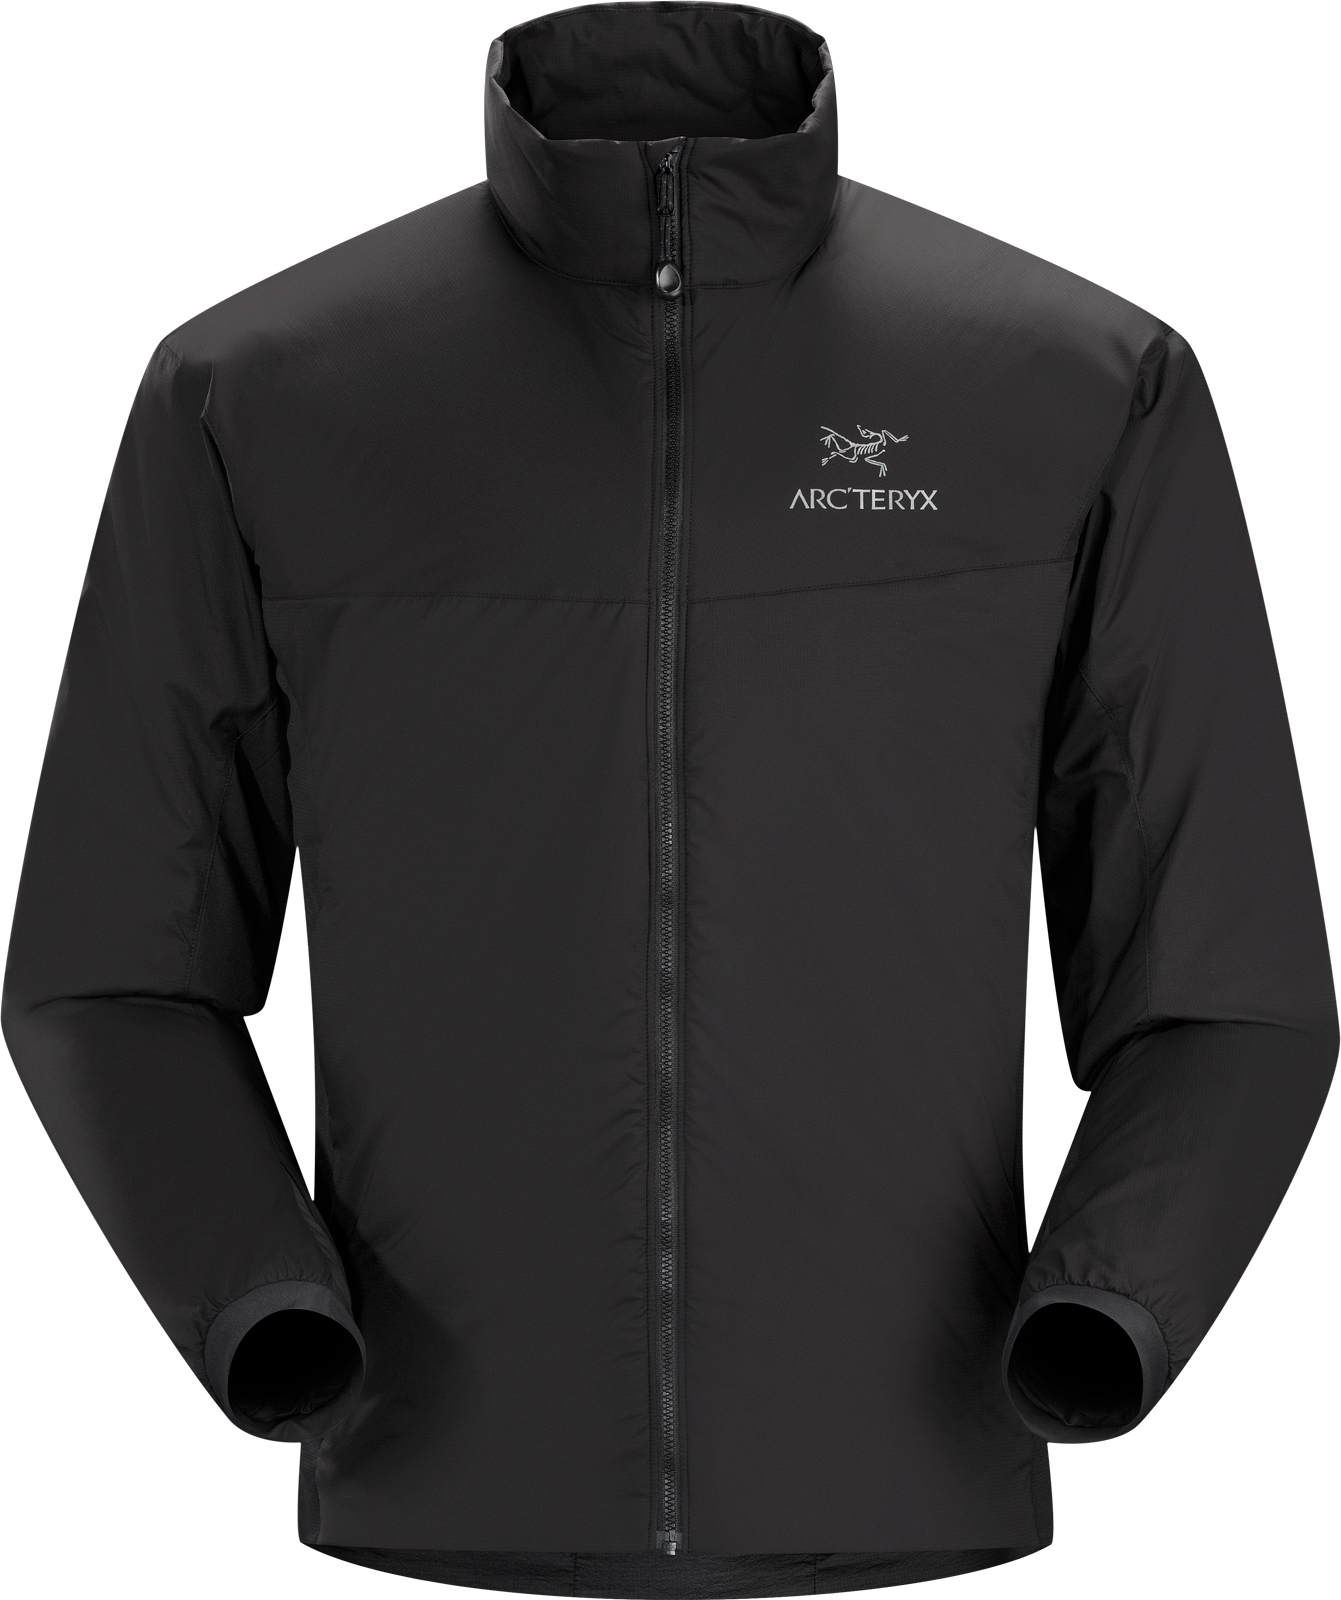 Arc'teryx Men's Atom LT Jacket in Black